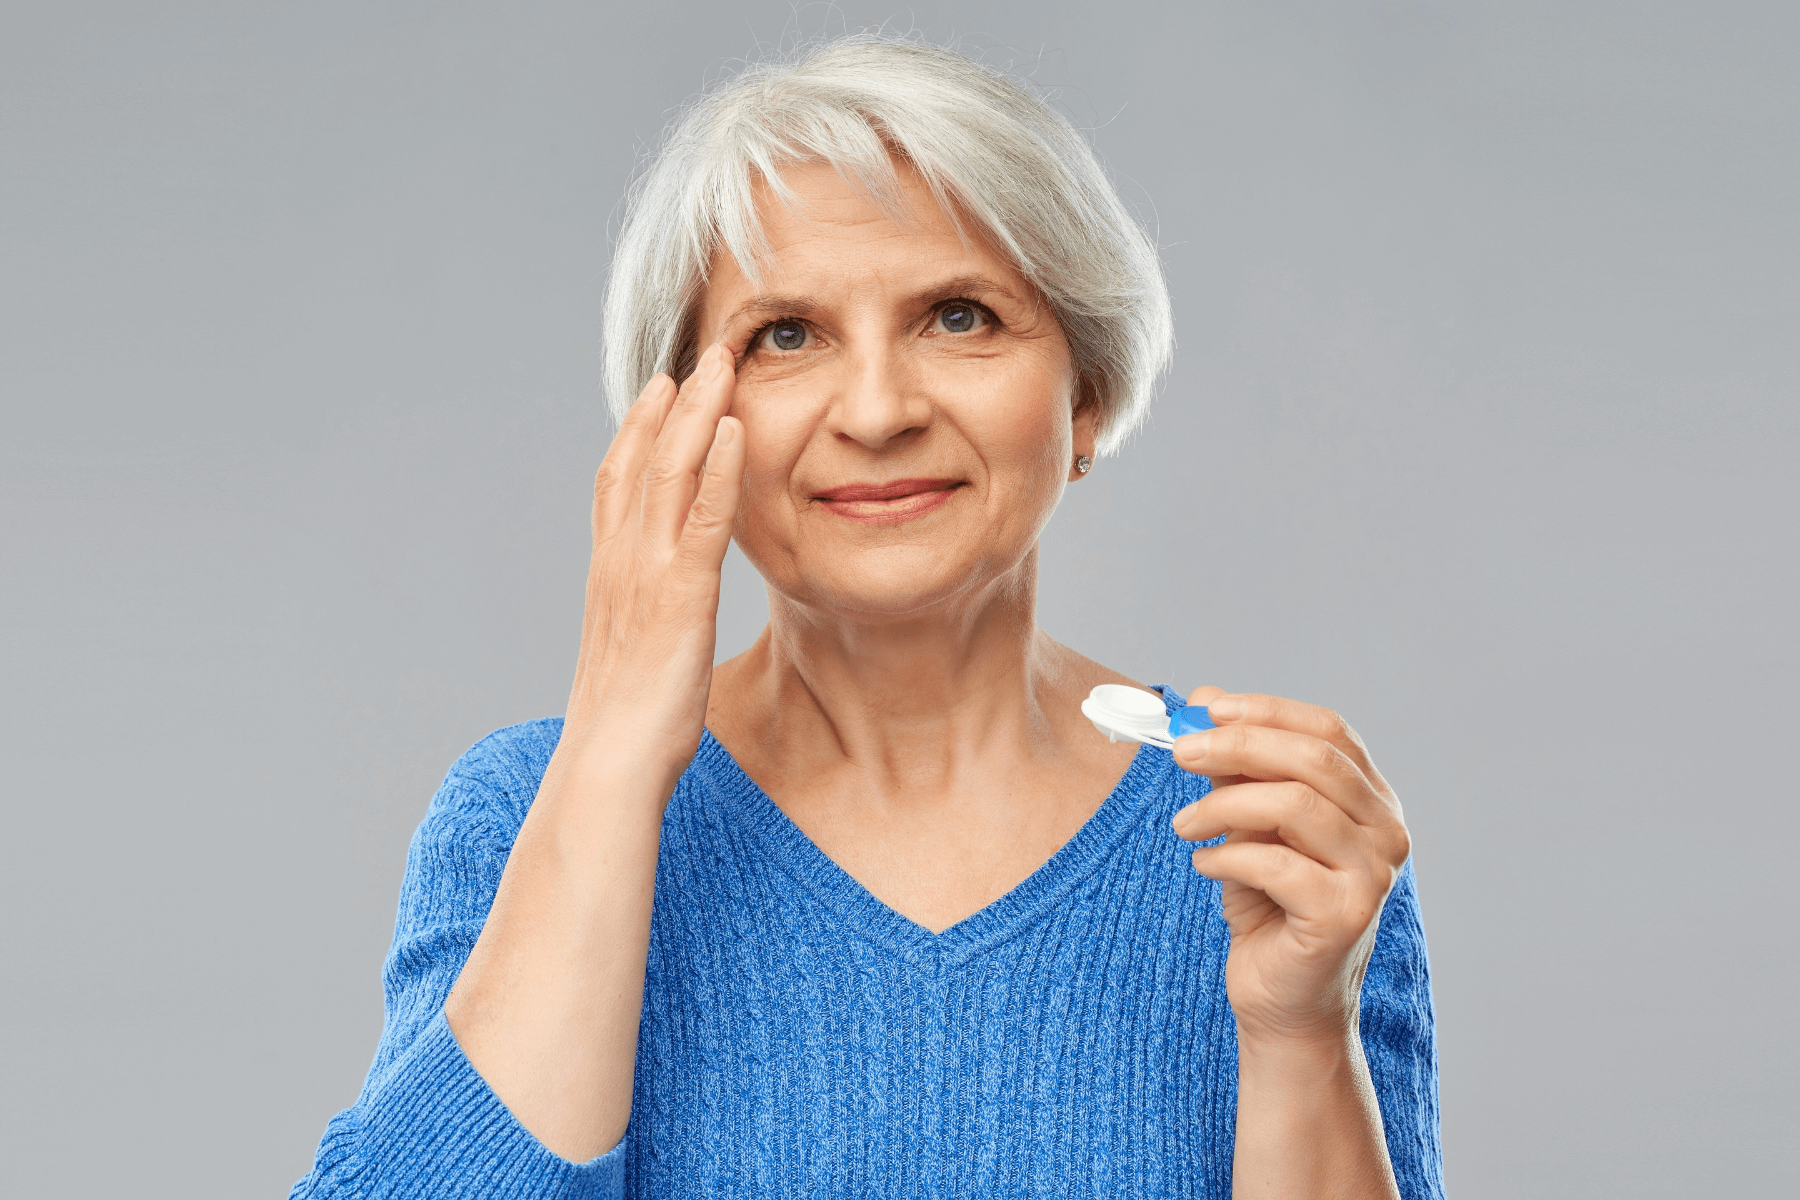 Nails, Eyes and Hair: What They Can Say About Senior Health